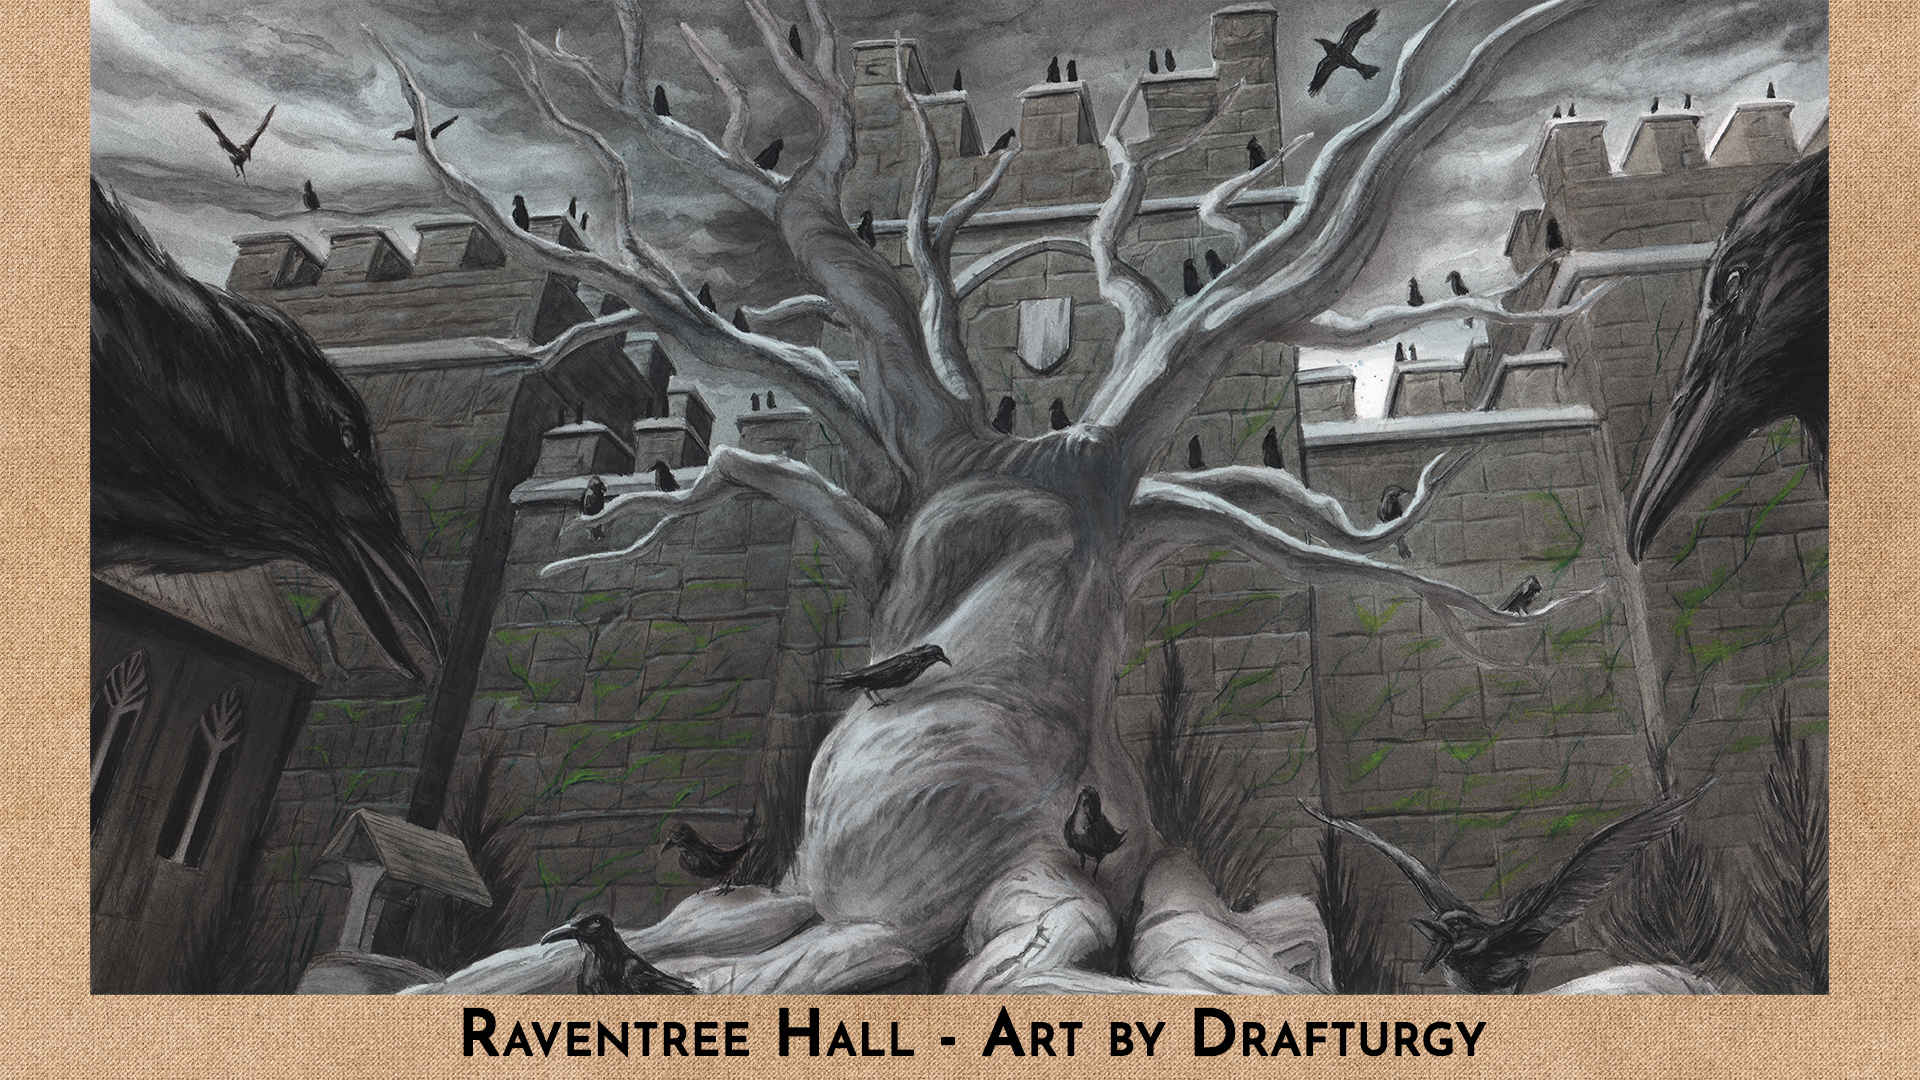 Raventree Hall by Drafturgy